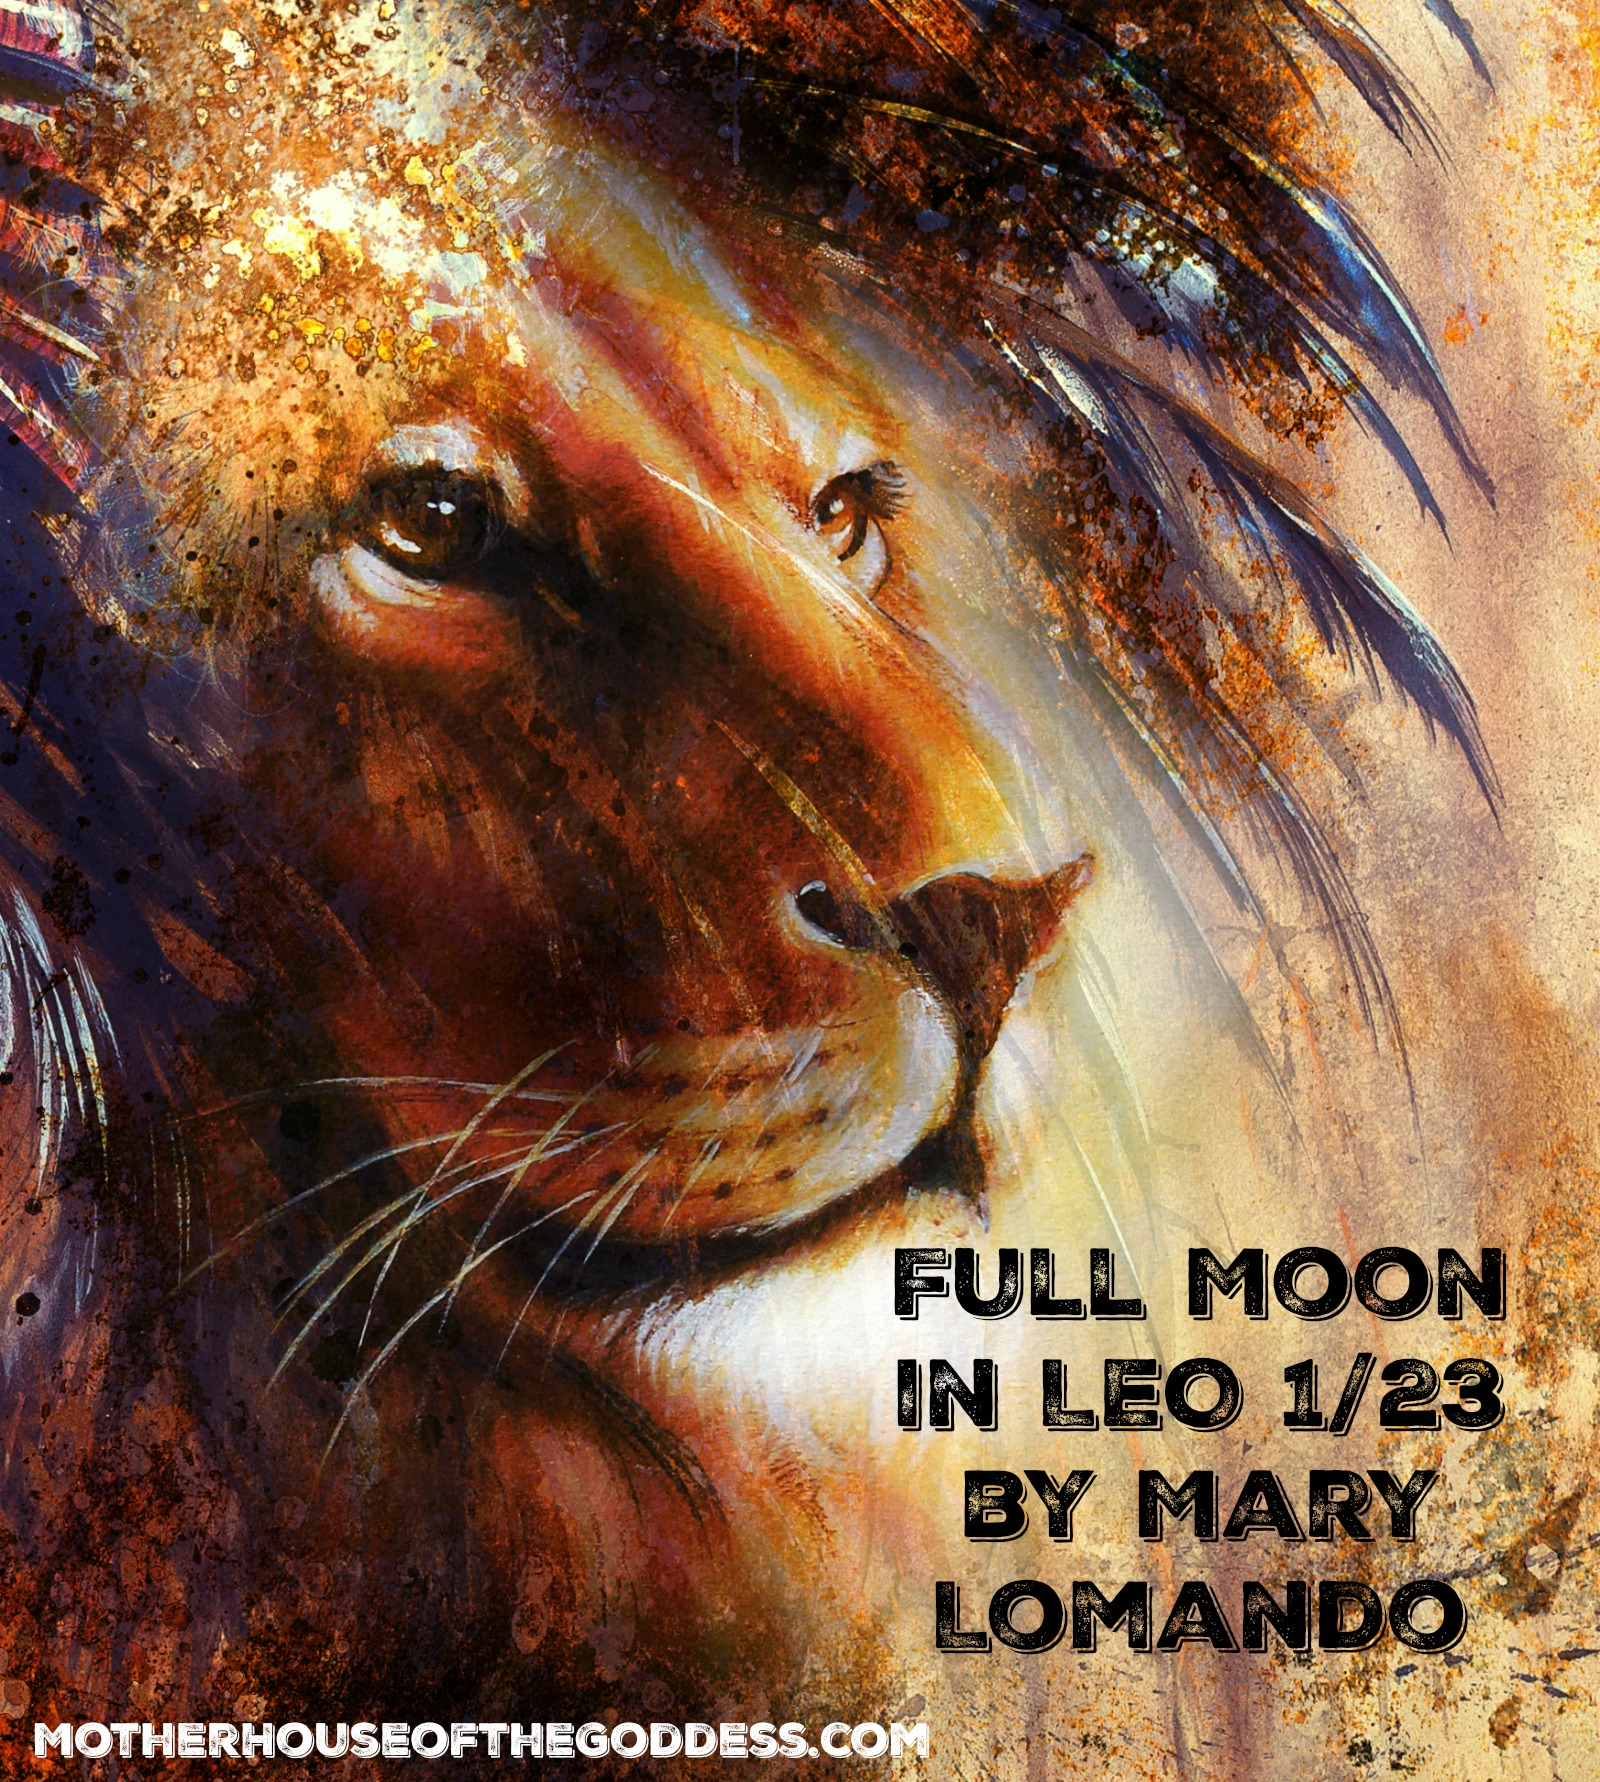 Astrology Update Full Moon in LEO January 23 by Mary Lomando for MotherHouse of the Goddess